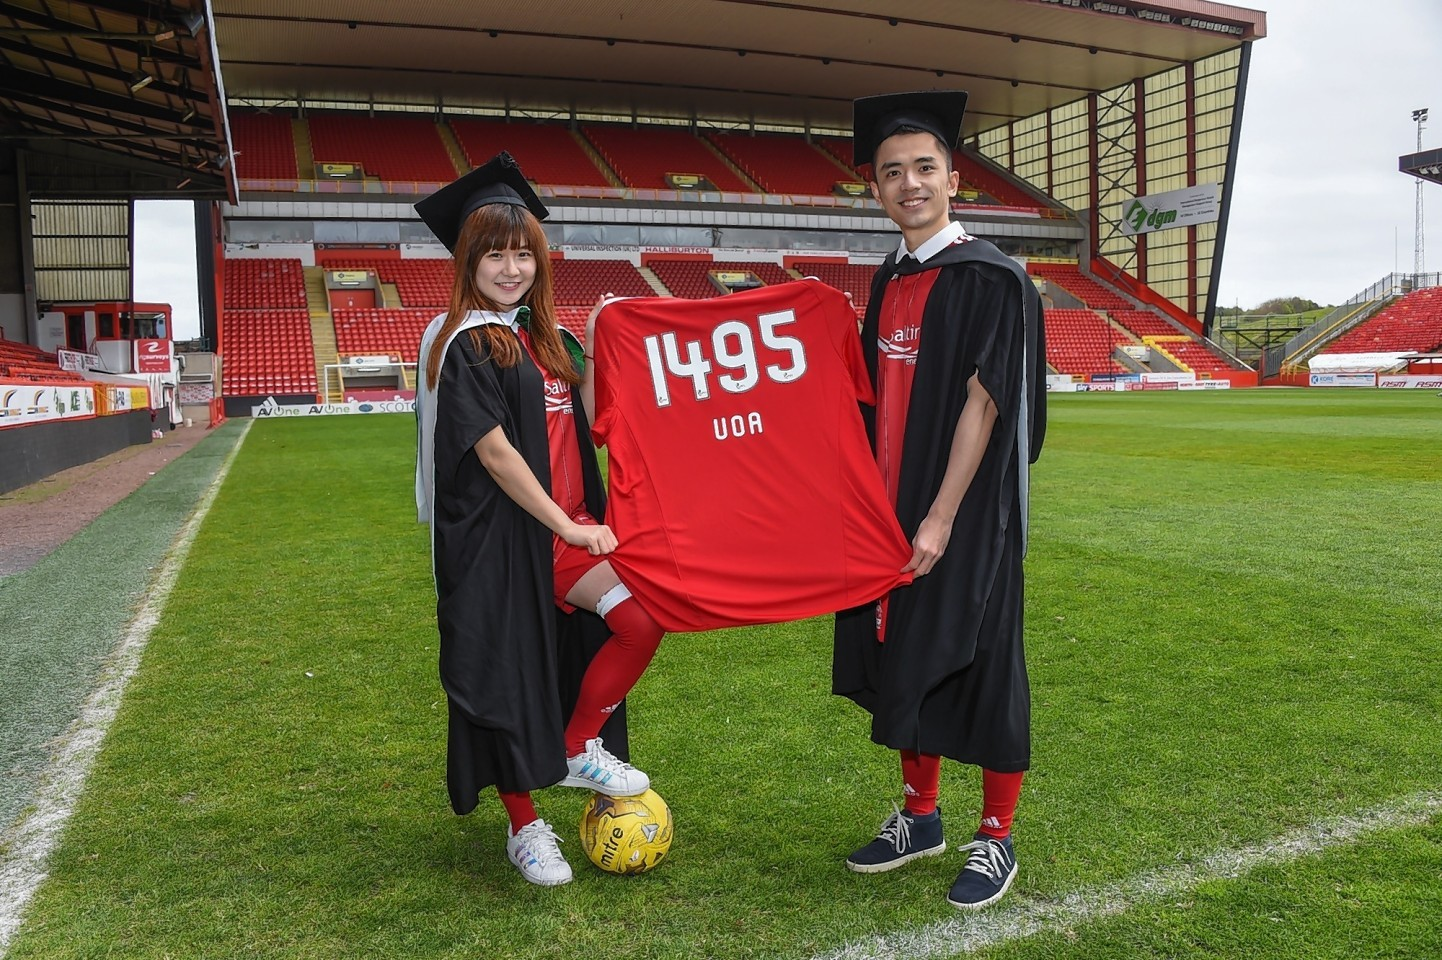 Aberdeen University students Beiqiao Gu, left, and Weipeng Liu show off their Dons' colours